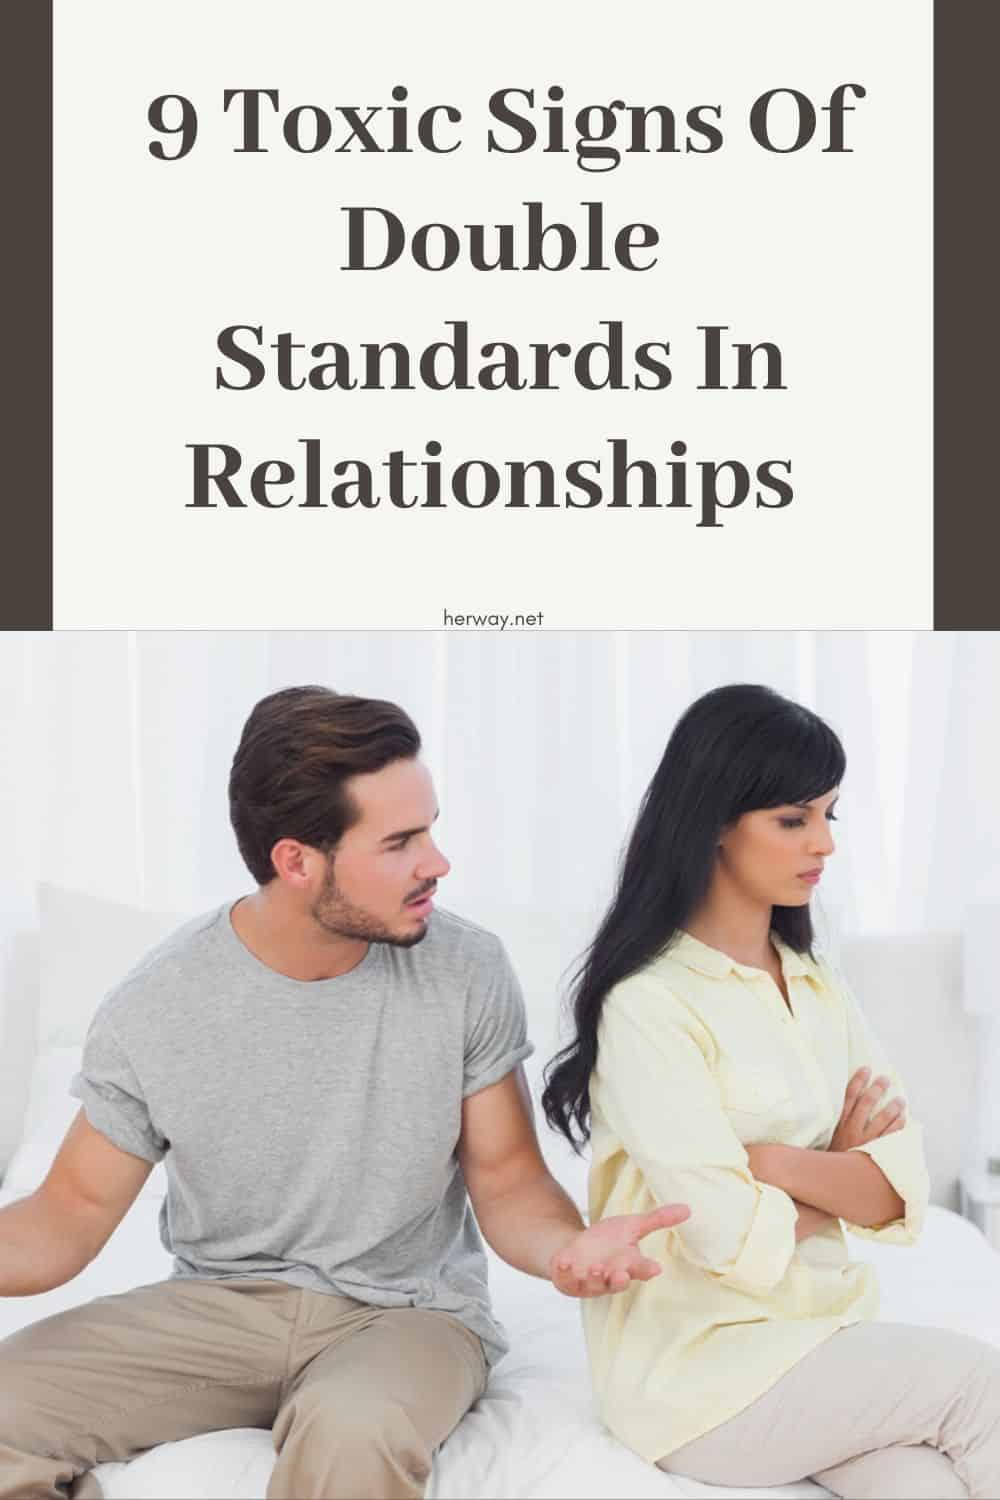 9 Toxic Signs Of Double Standards In Relationships